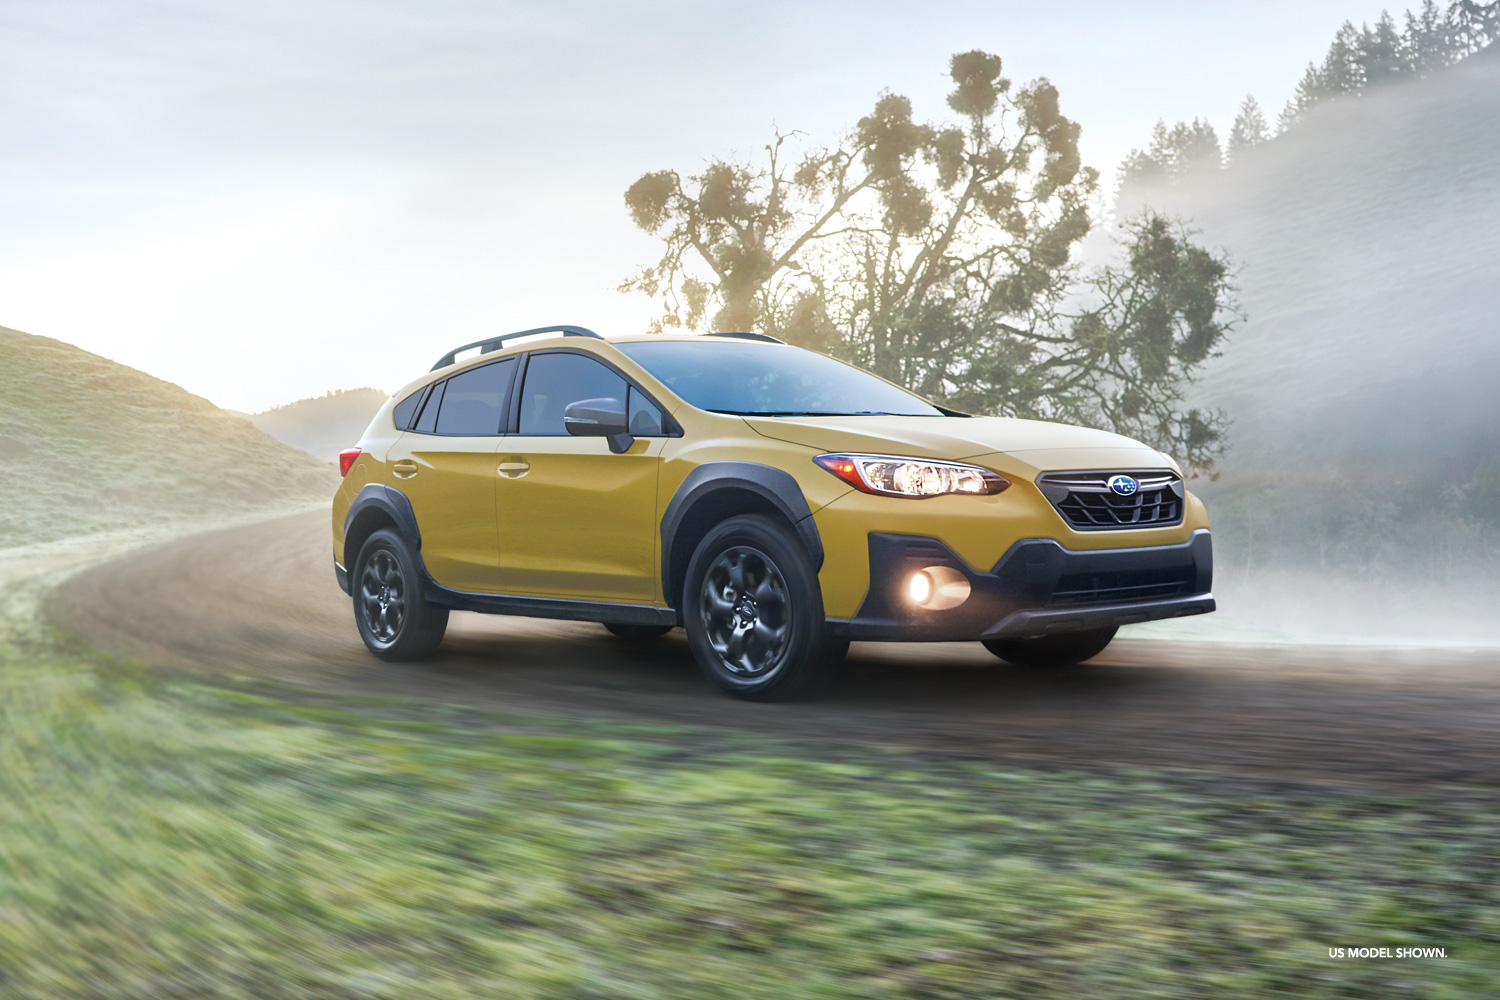 the new 2021 subaru crosstrek  2021 crosstrek  subaru canada